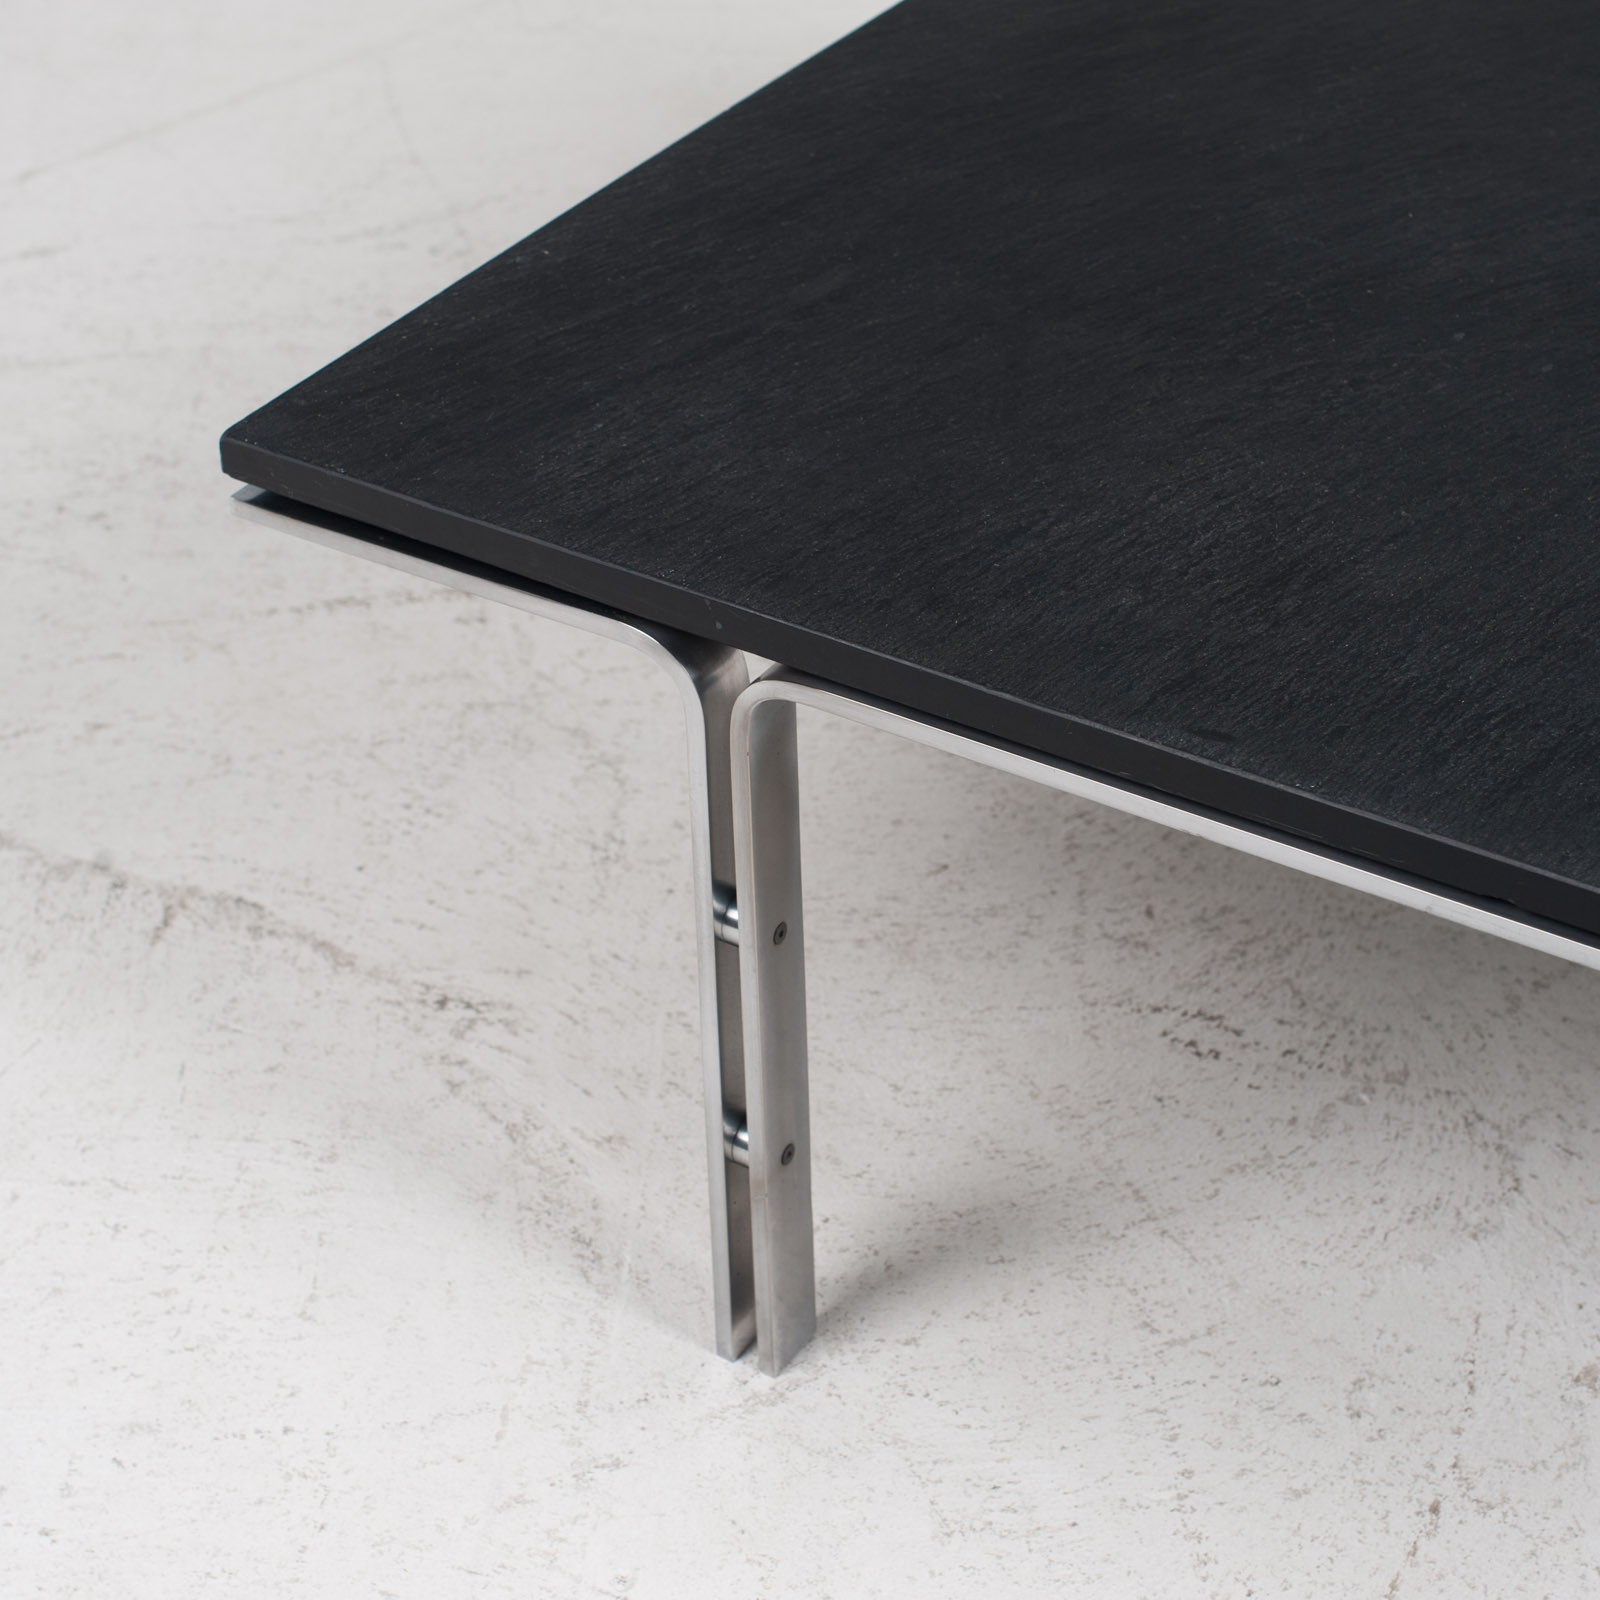 Coffee Table By Hank Kwint For Metaform In Slate And Chrome 1970s Netherlands 03